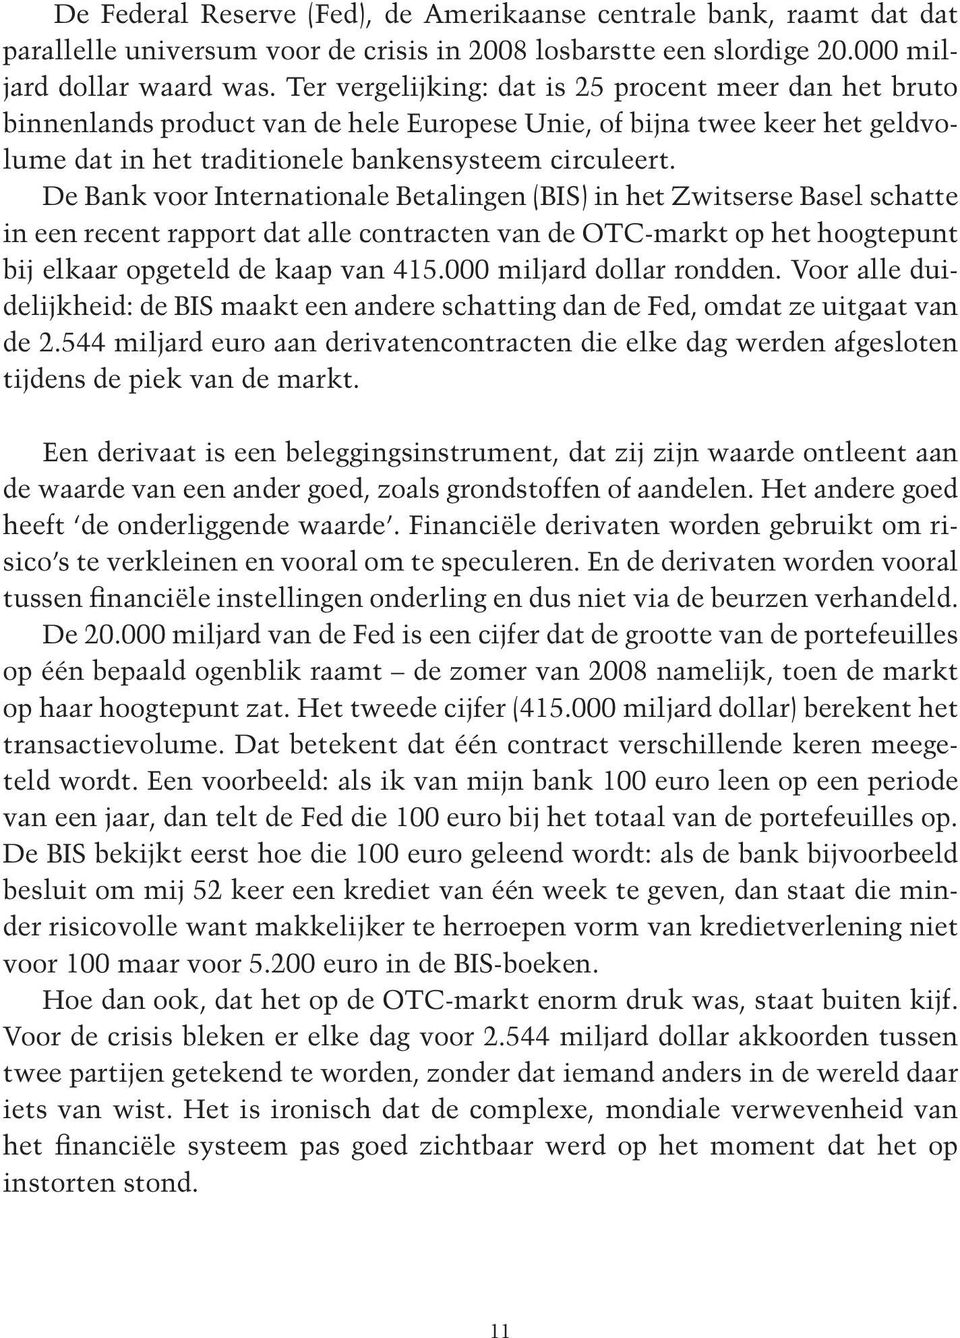 De Bank voor Internationale Betalingen (BIS) in het Zwitserse Basel schatte in een recent rapport dat alle contracten van de OTC-markt op het hoogtepunt bij elkaar opgeteld de kaap van 415.